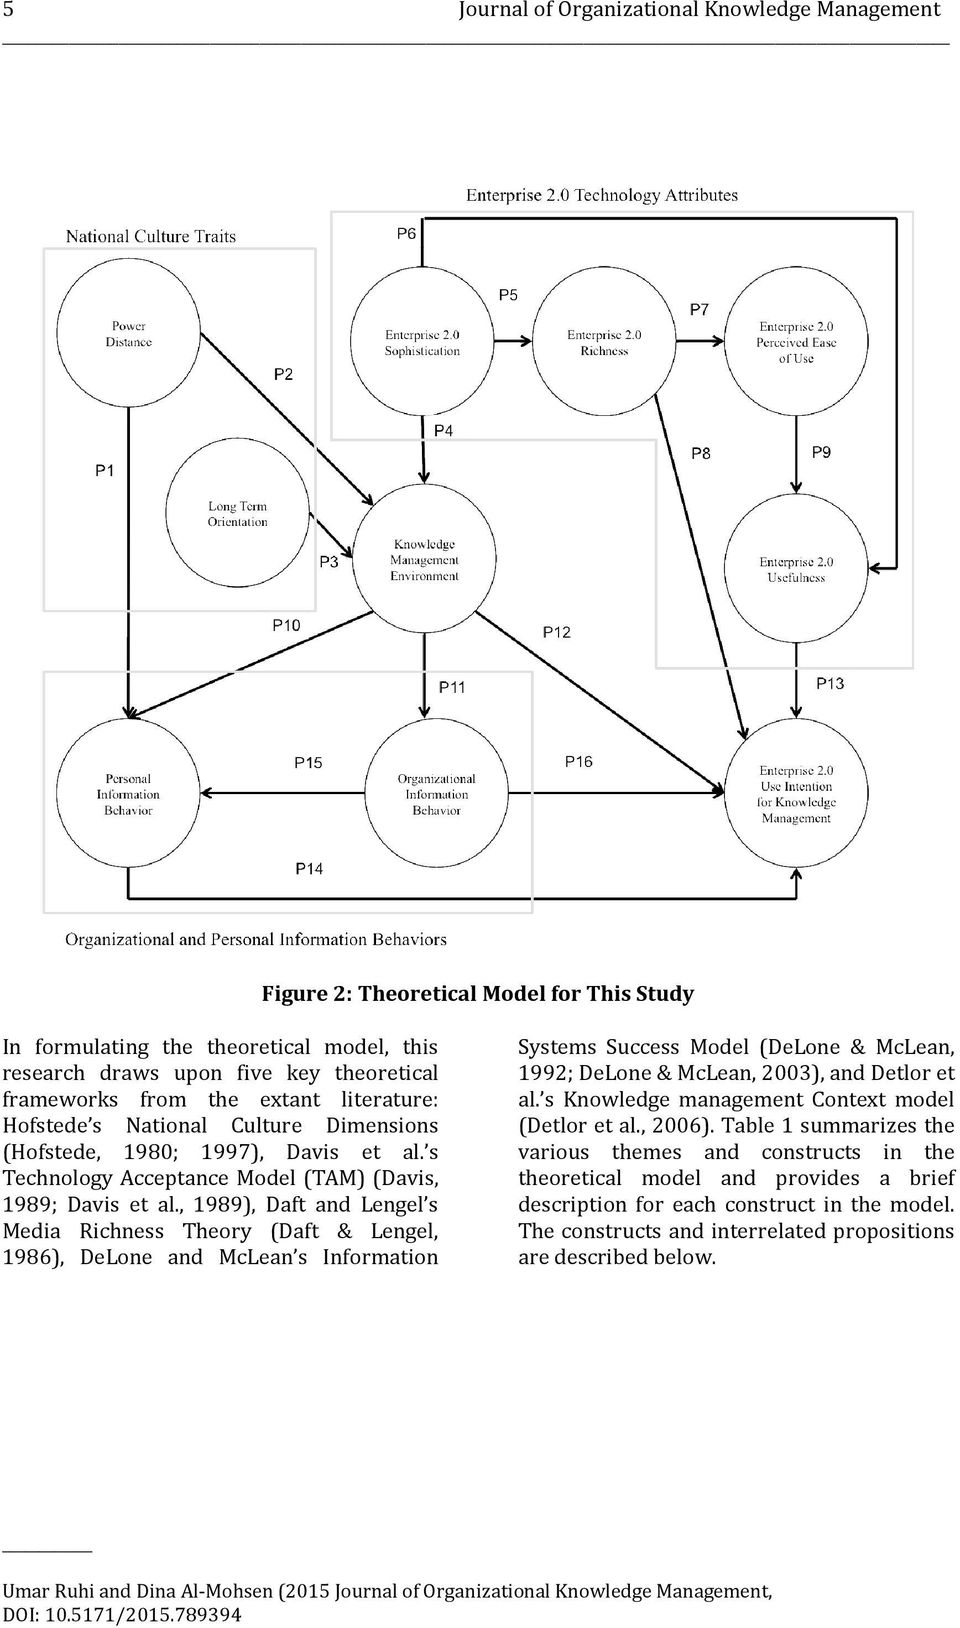 , 18), Daft and Lengel s Media Richness Theory (Daft & Lengel, 186), DeLone and McLean s Information Systems Success Model (DeLone & McLean, 12; DeLone & McLean, 2003), and Detlor et al.